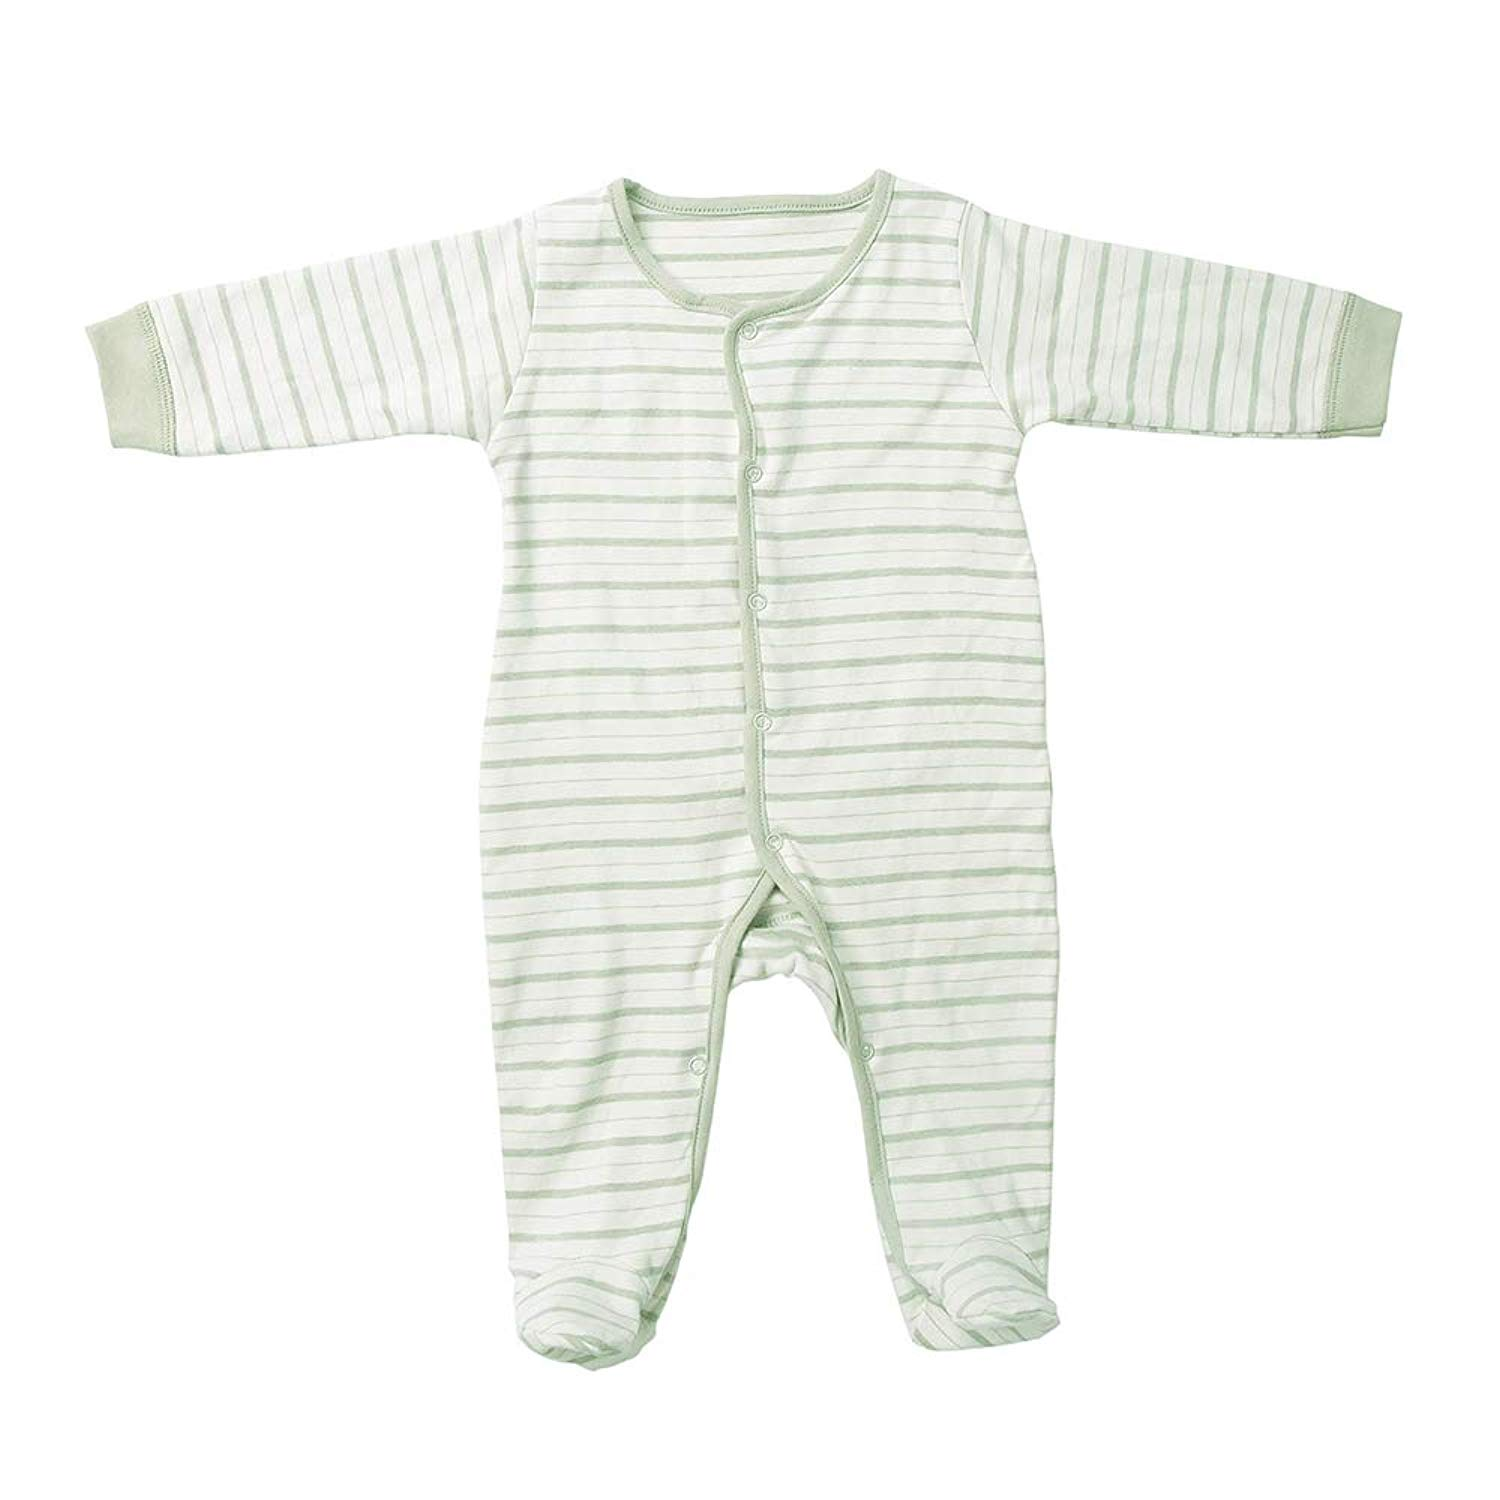 9d63ac880 Cheap Baby Boy Footed Pajamas